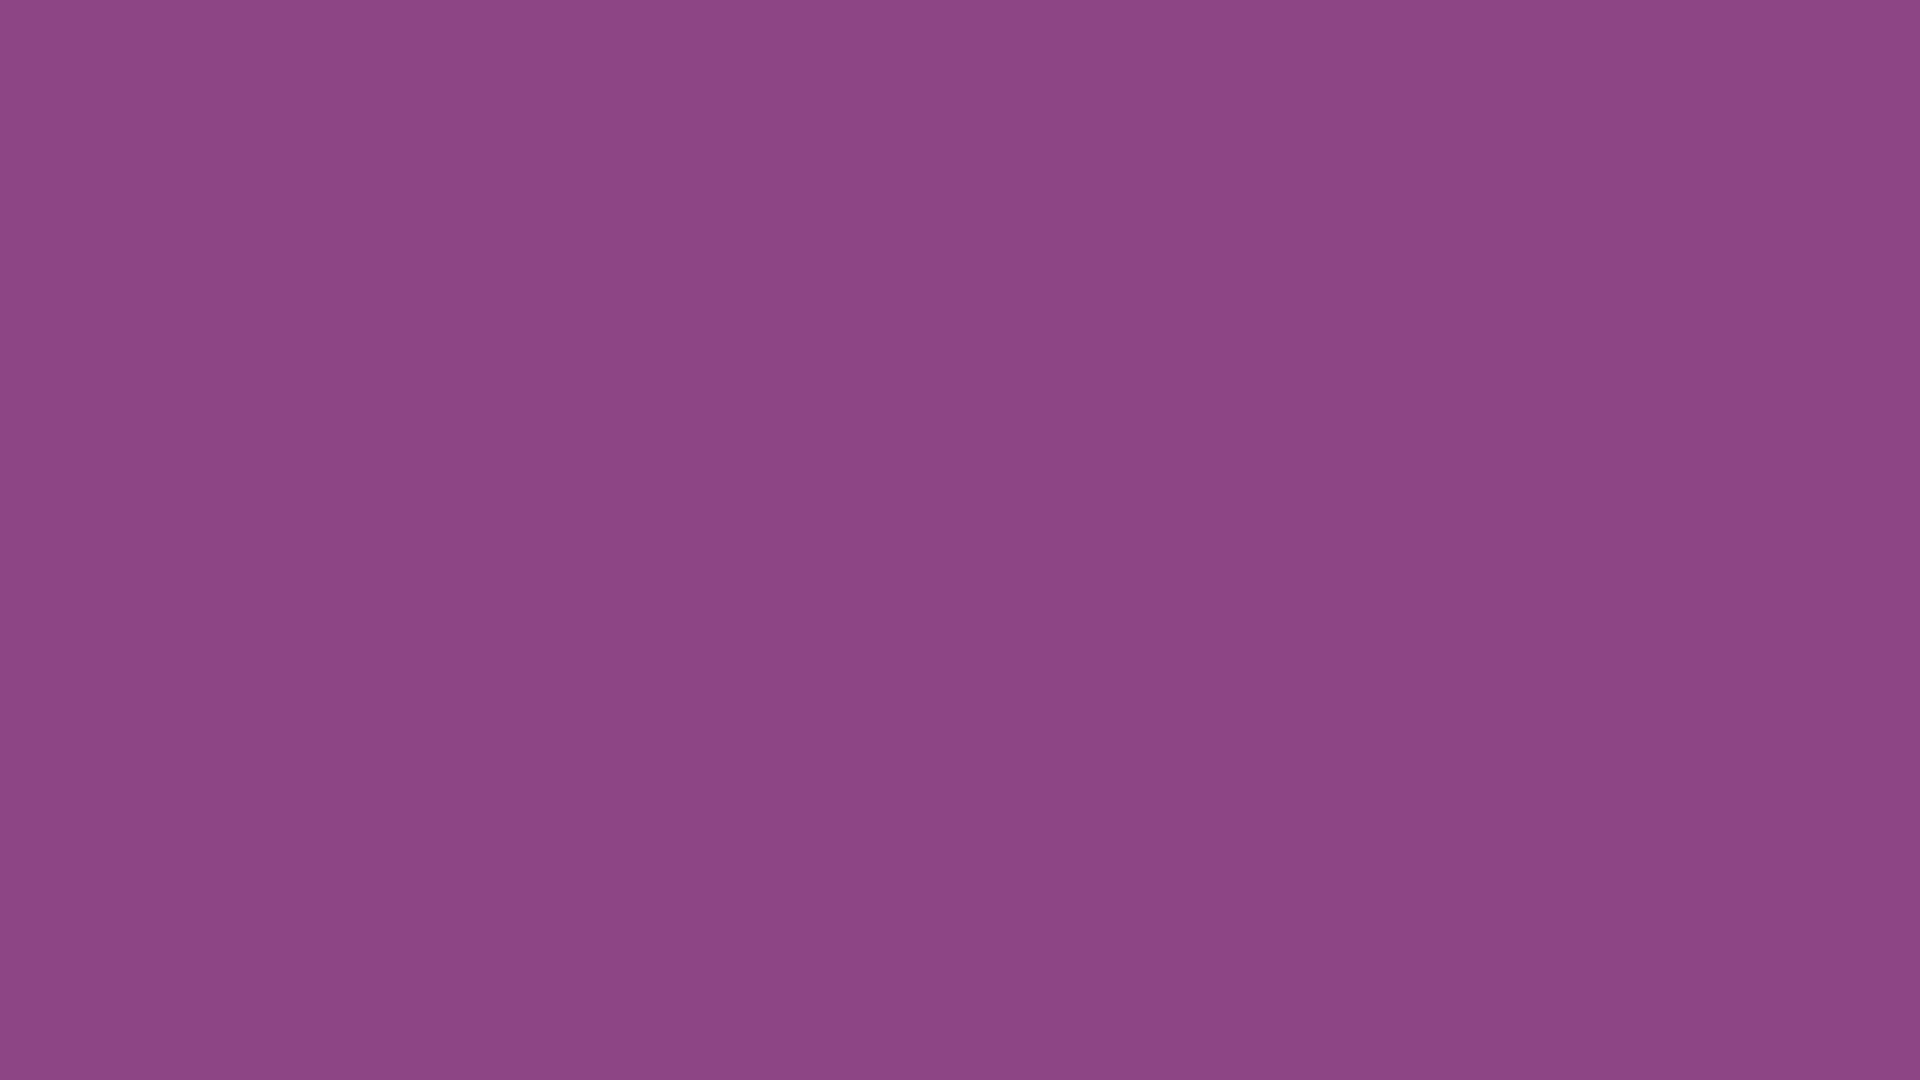 Solid Color Wallpaper Border With Plum In HD